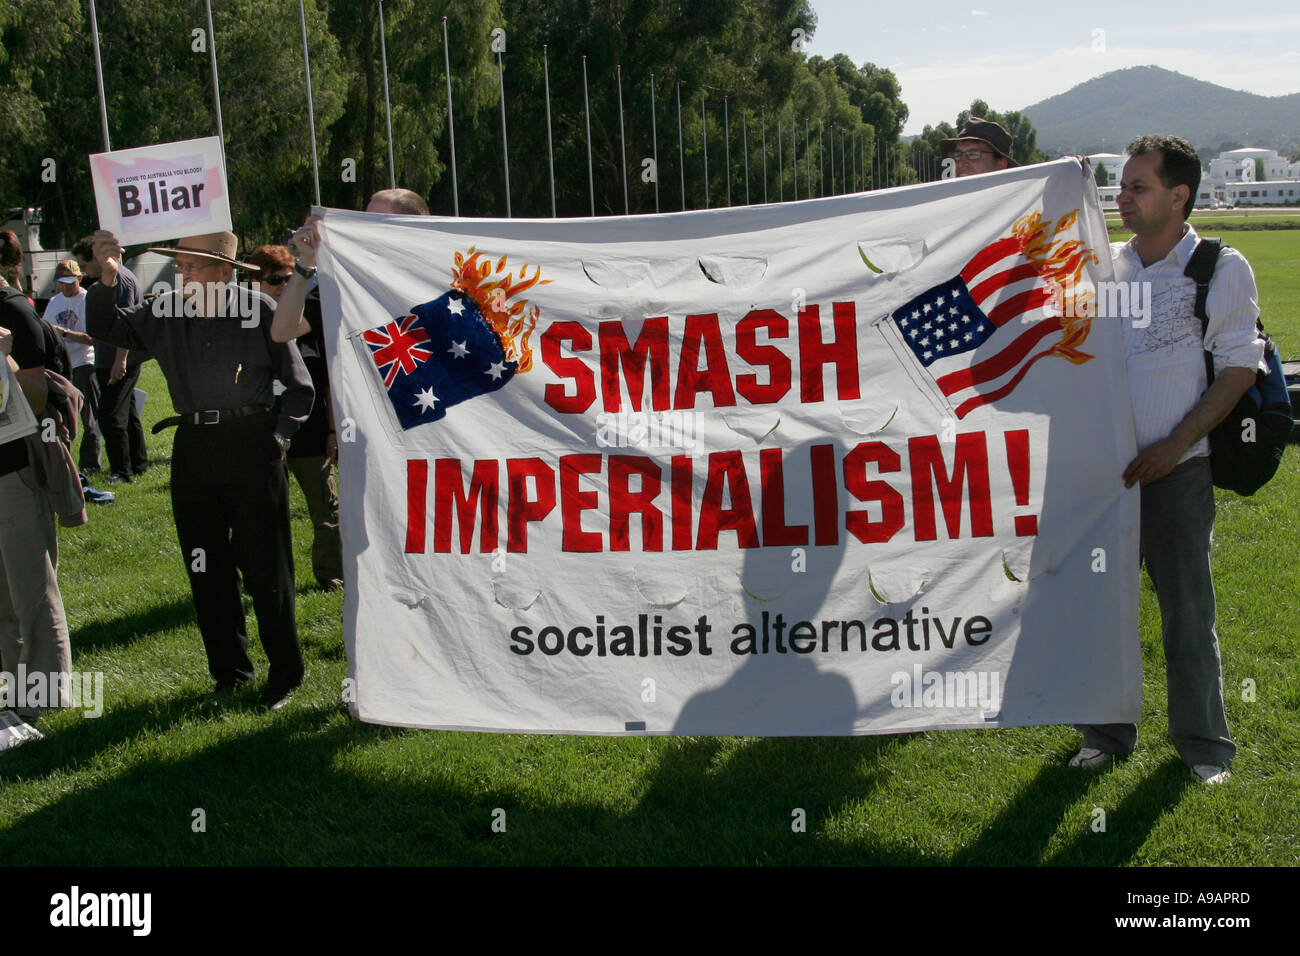 Smash Imperialism - Stock Image